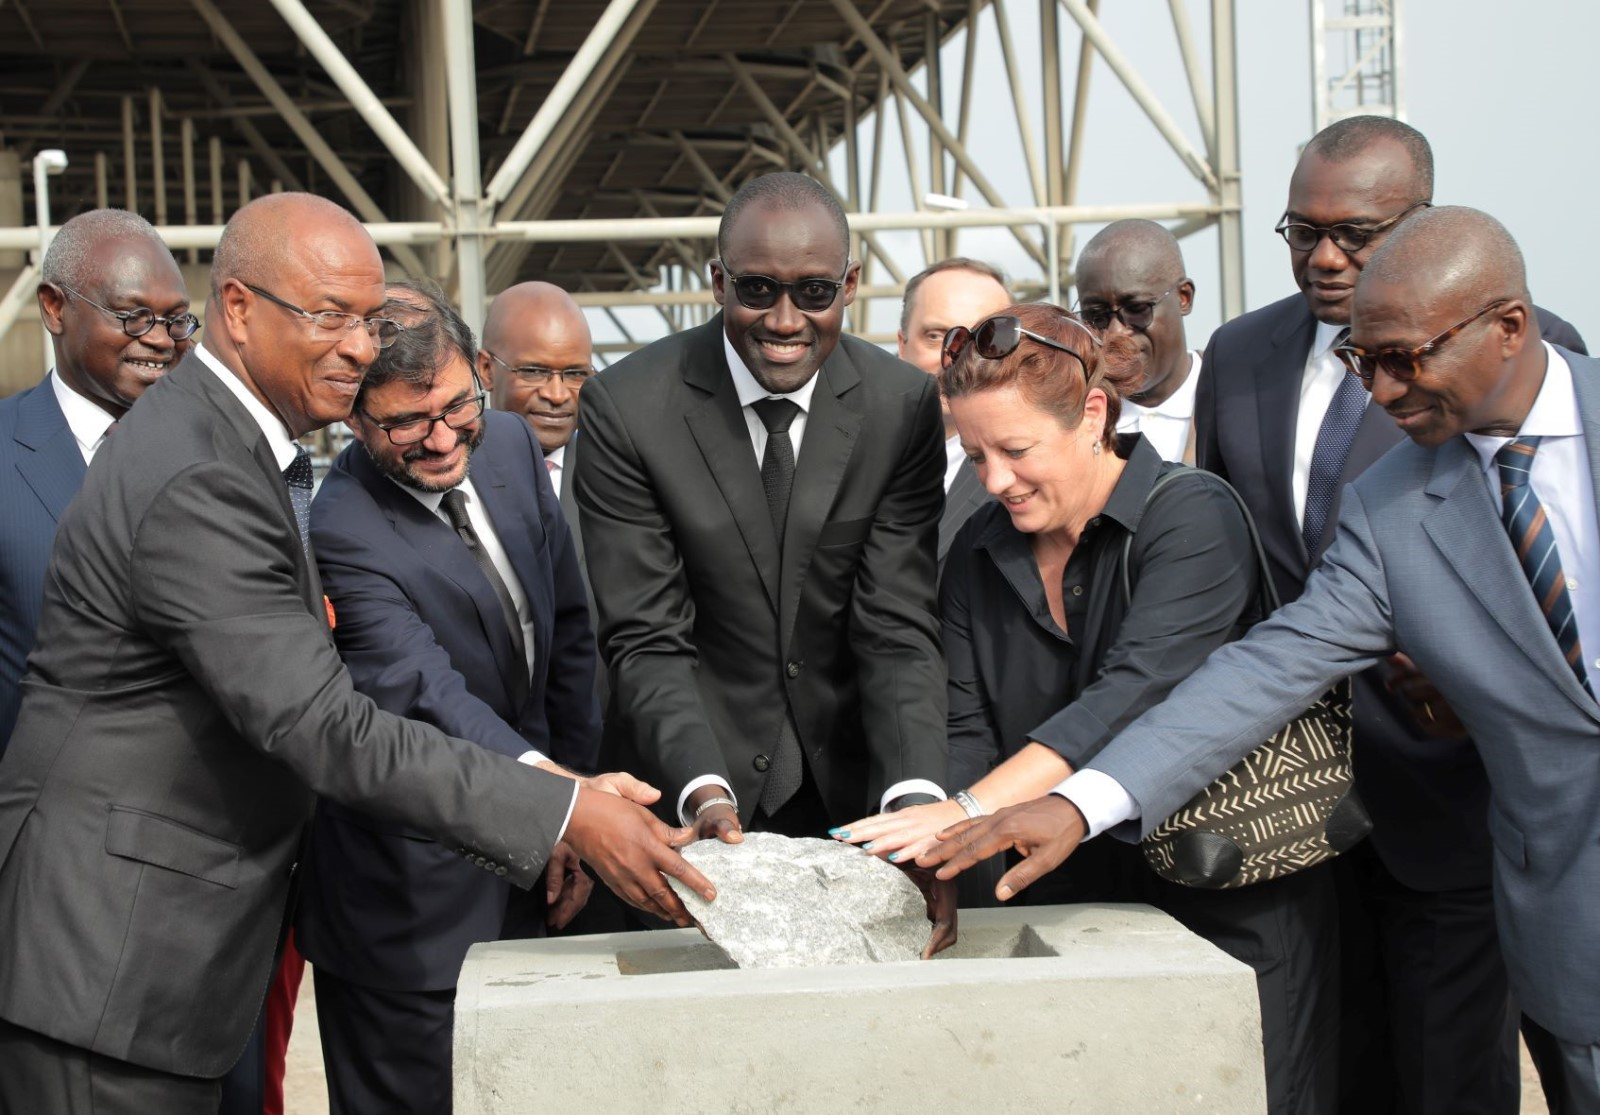 At the beginning of the month, Petroleum and Energy Minister Abdourahmane Cisse laid the foundation stone for the Azito IV expansion project